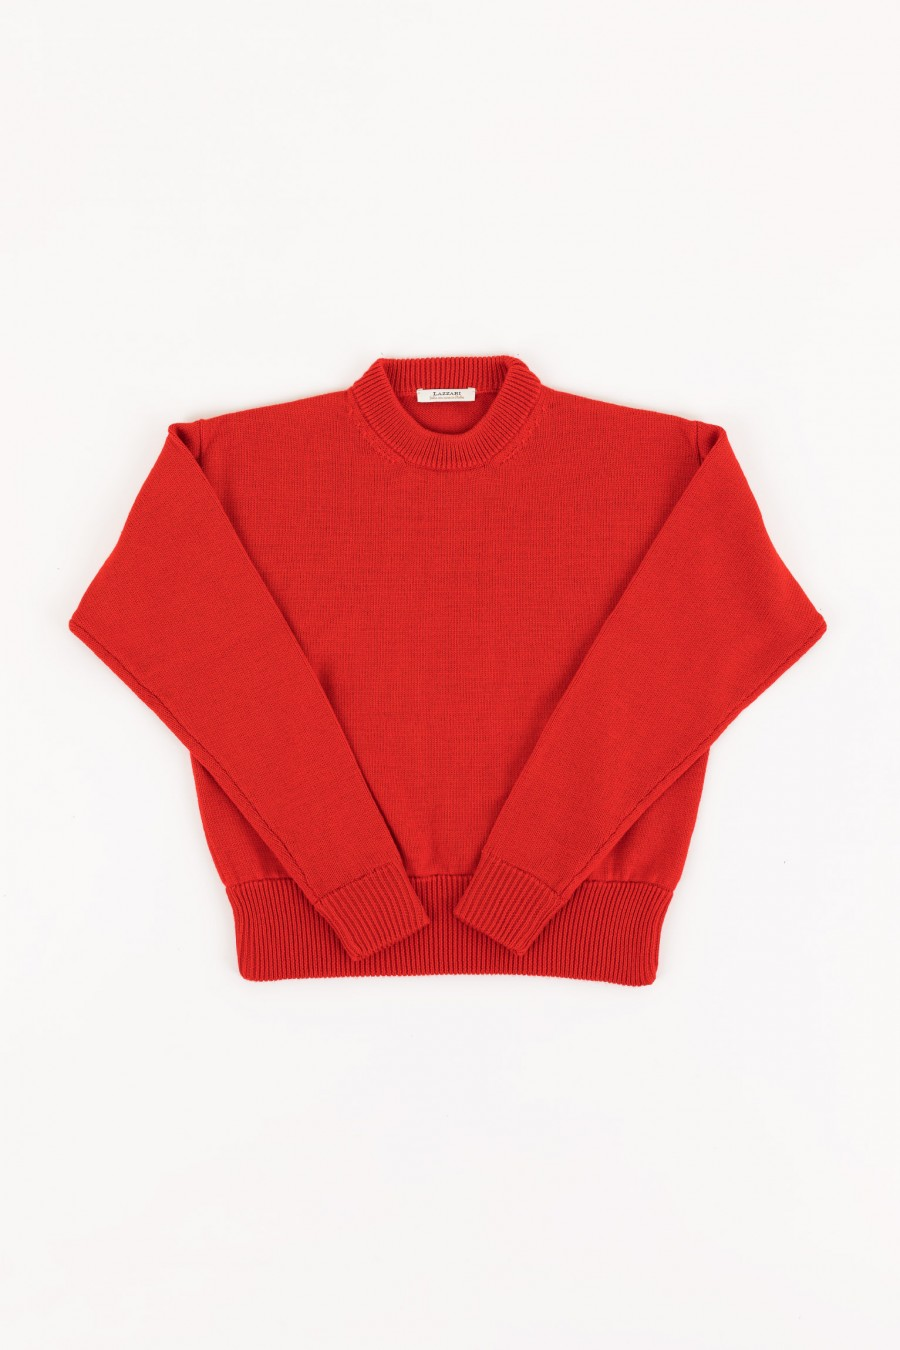 Red cropped sweater